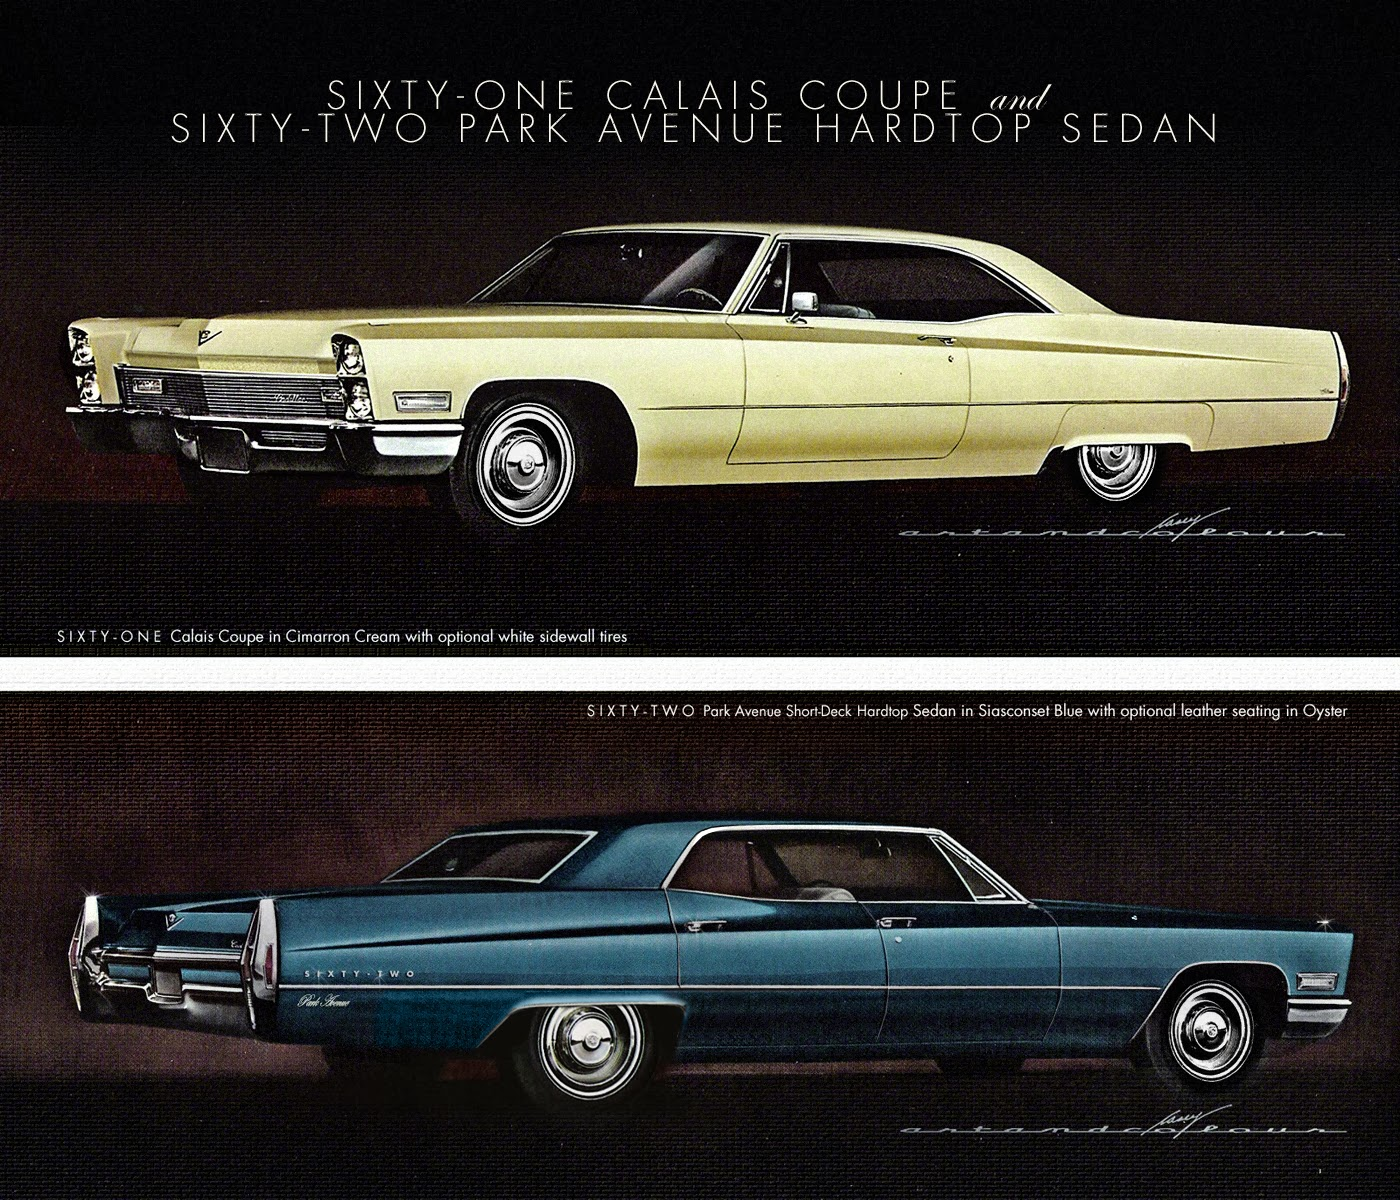 Casey artandcolour cars february 2012 - Above My Entry Level Sixty One Sport Coupe It S A Full Size Caddy But Uses The Gm B Body Roofline From That Period I Ve Done A Couple Of Renderings Of